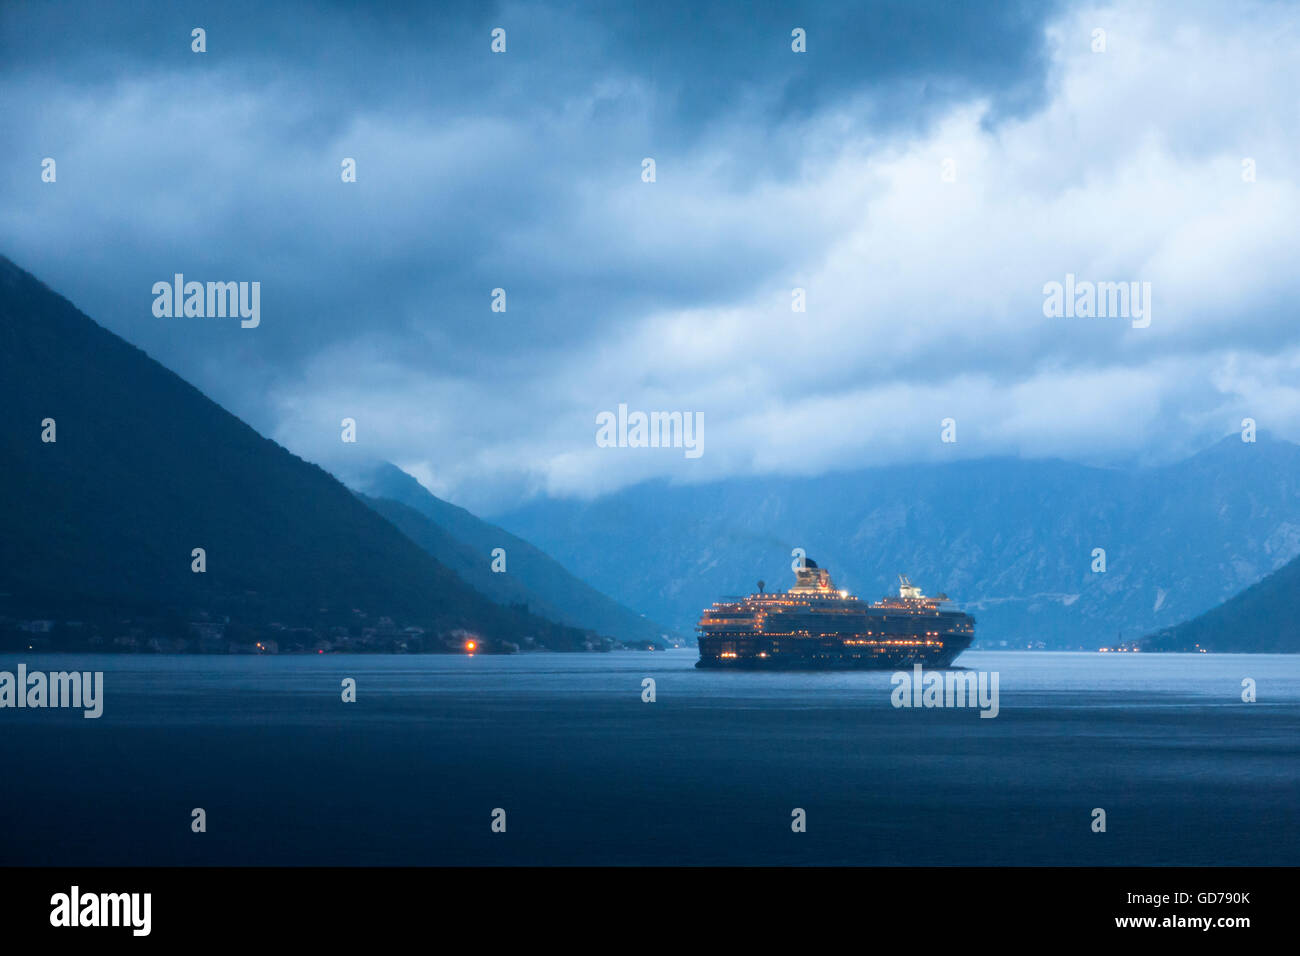 Boka Kotorska (the Bay of Kotor) from the village of Dobrota, Montenegro on a stormy evening: Mein Schiff 2 departing - Stock Image